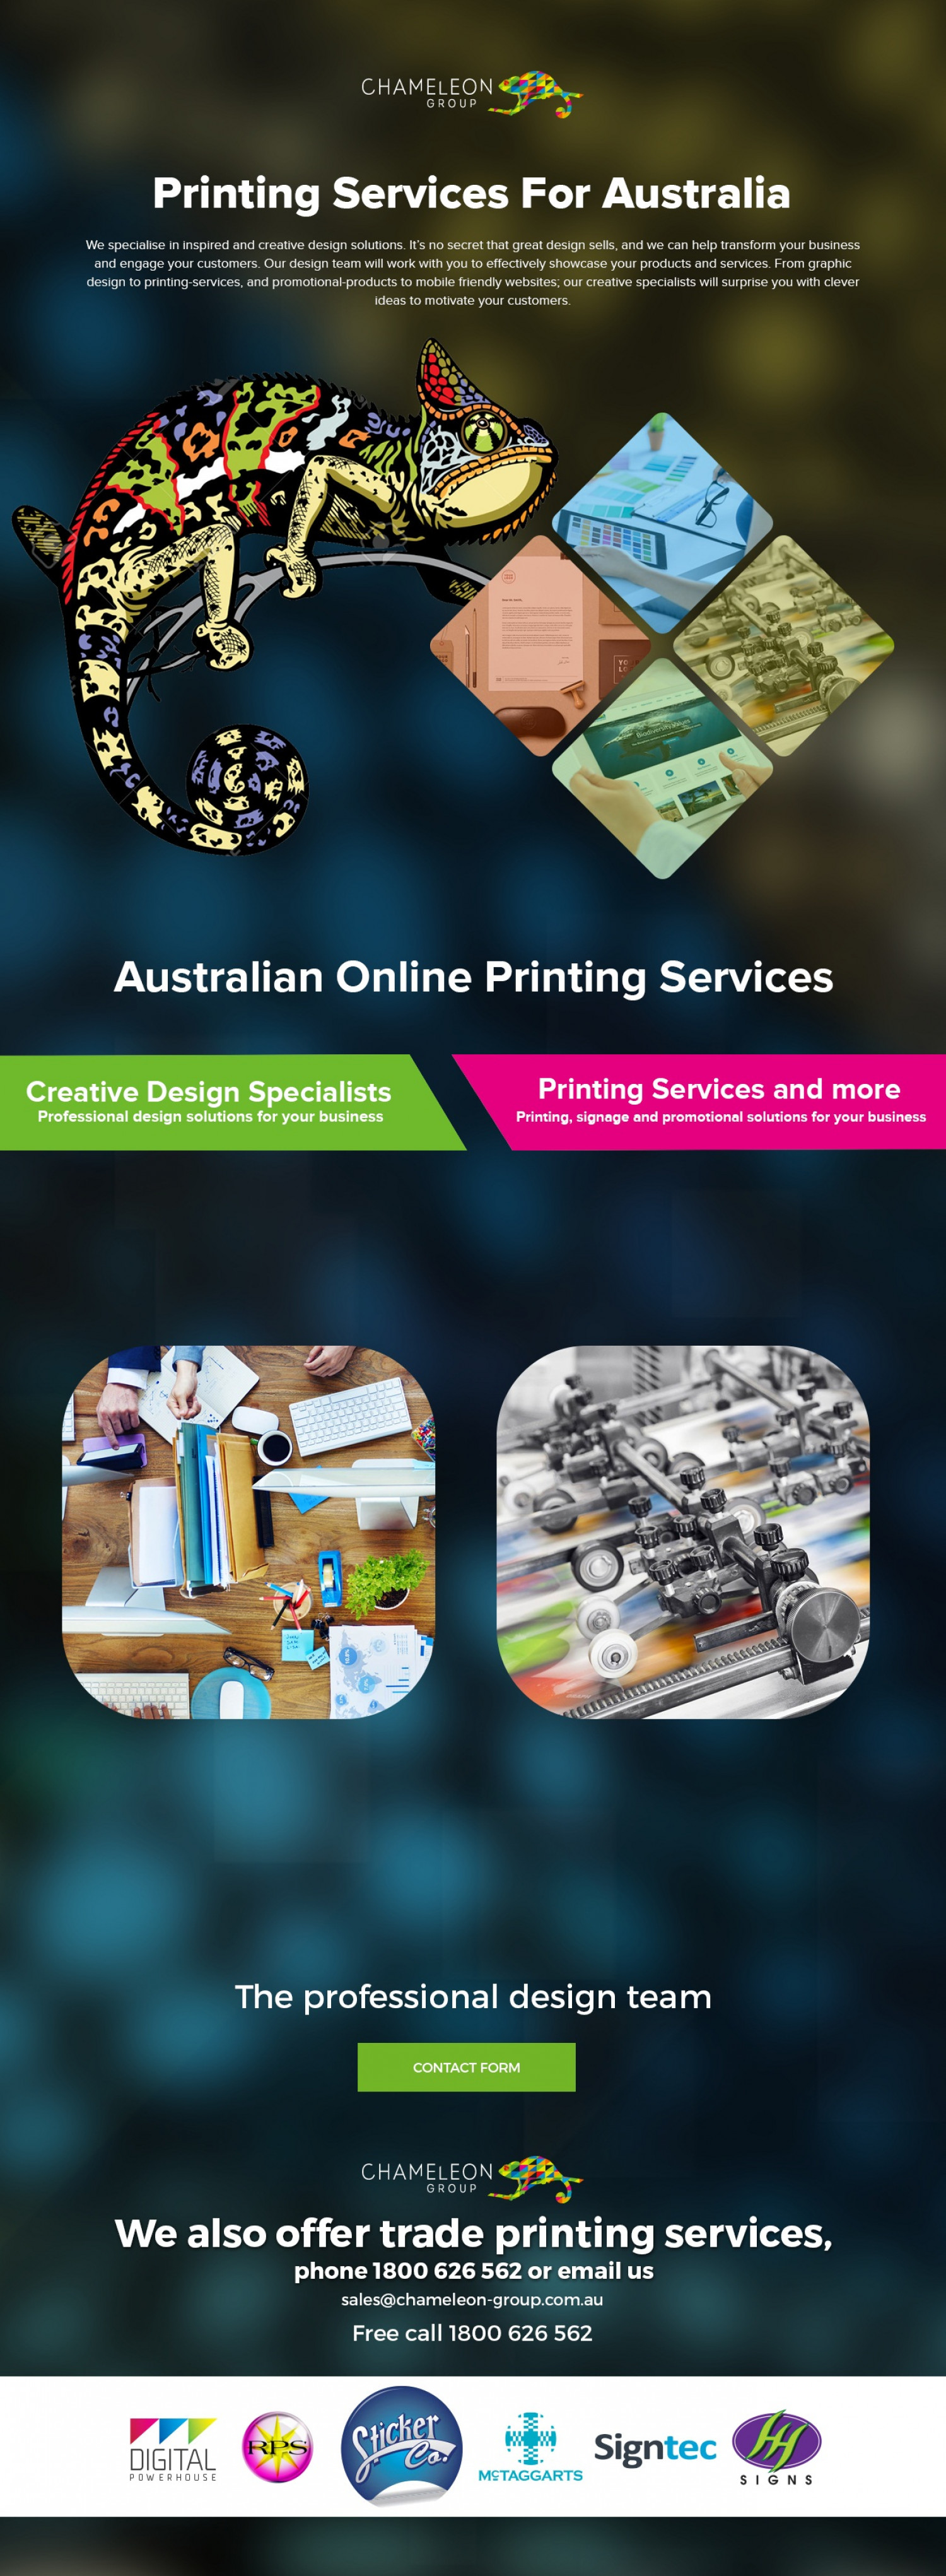 Australian Online Printing Services Infographic